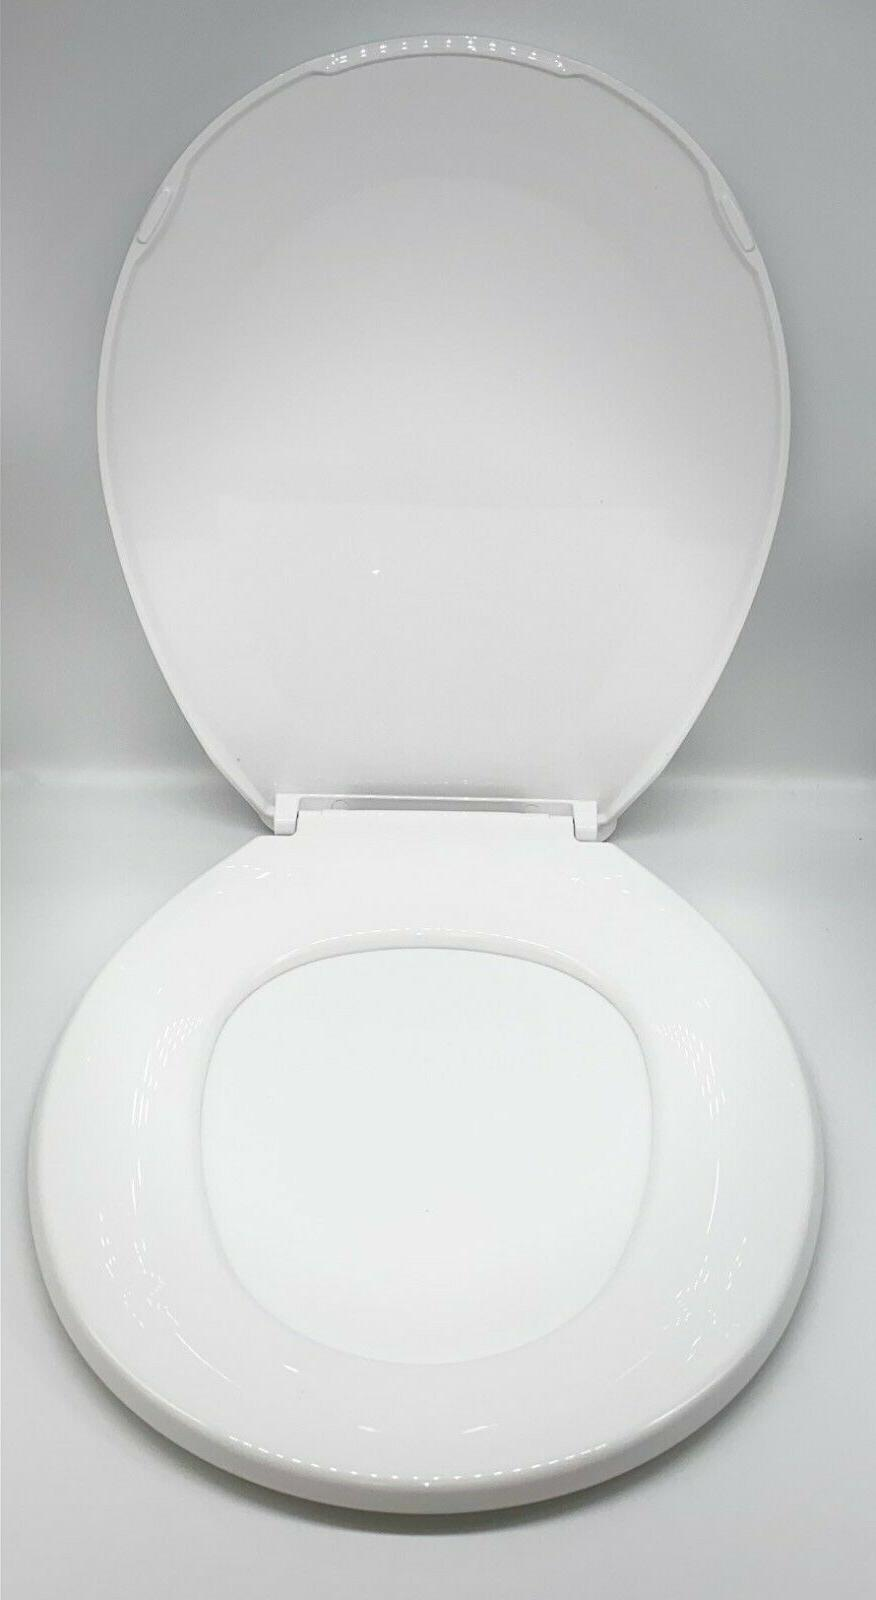 Heavy Toilet Seat Replacement With White